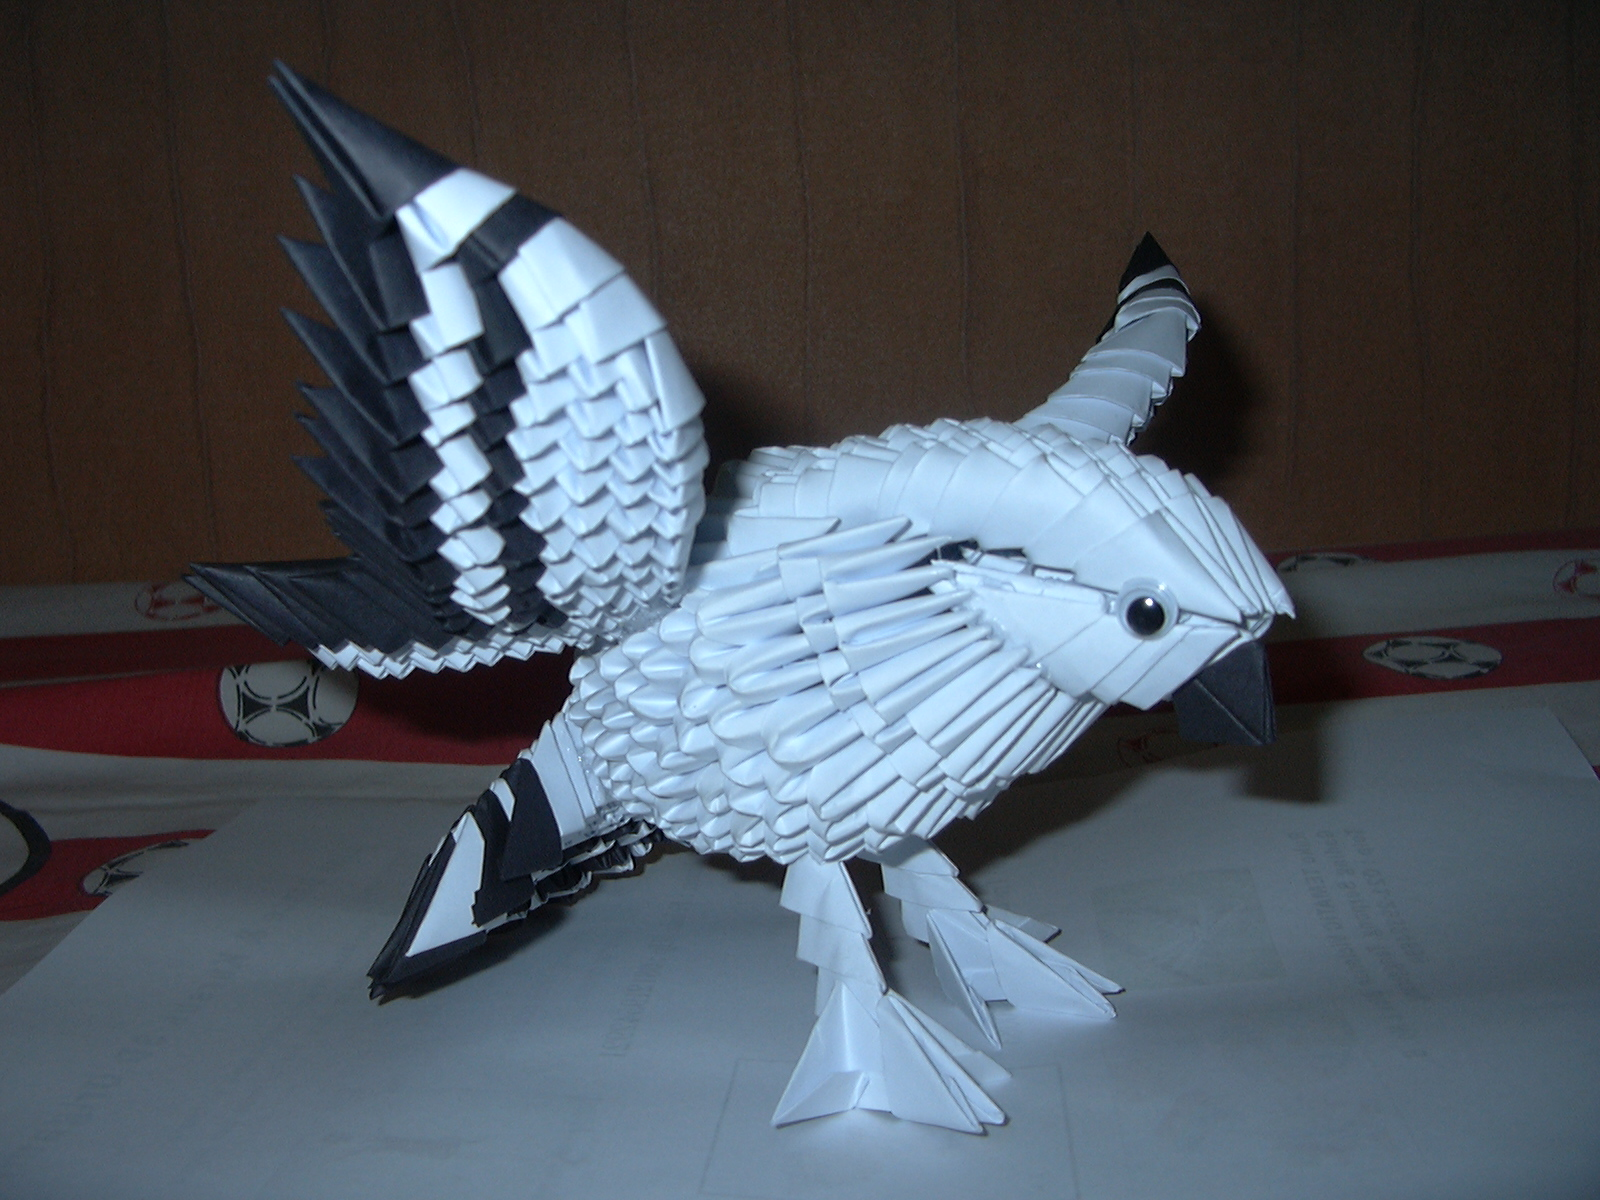 ICHANOKO 3D ORIGAMI INDONESIA: Model 3d origami - ANIMALS - photo#49